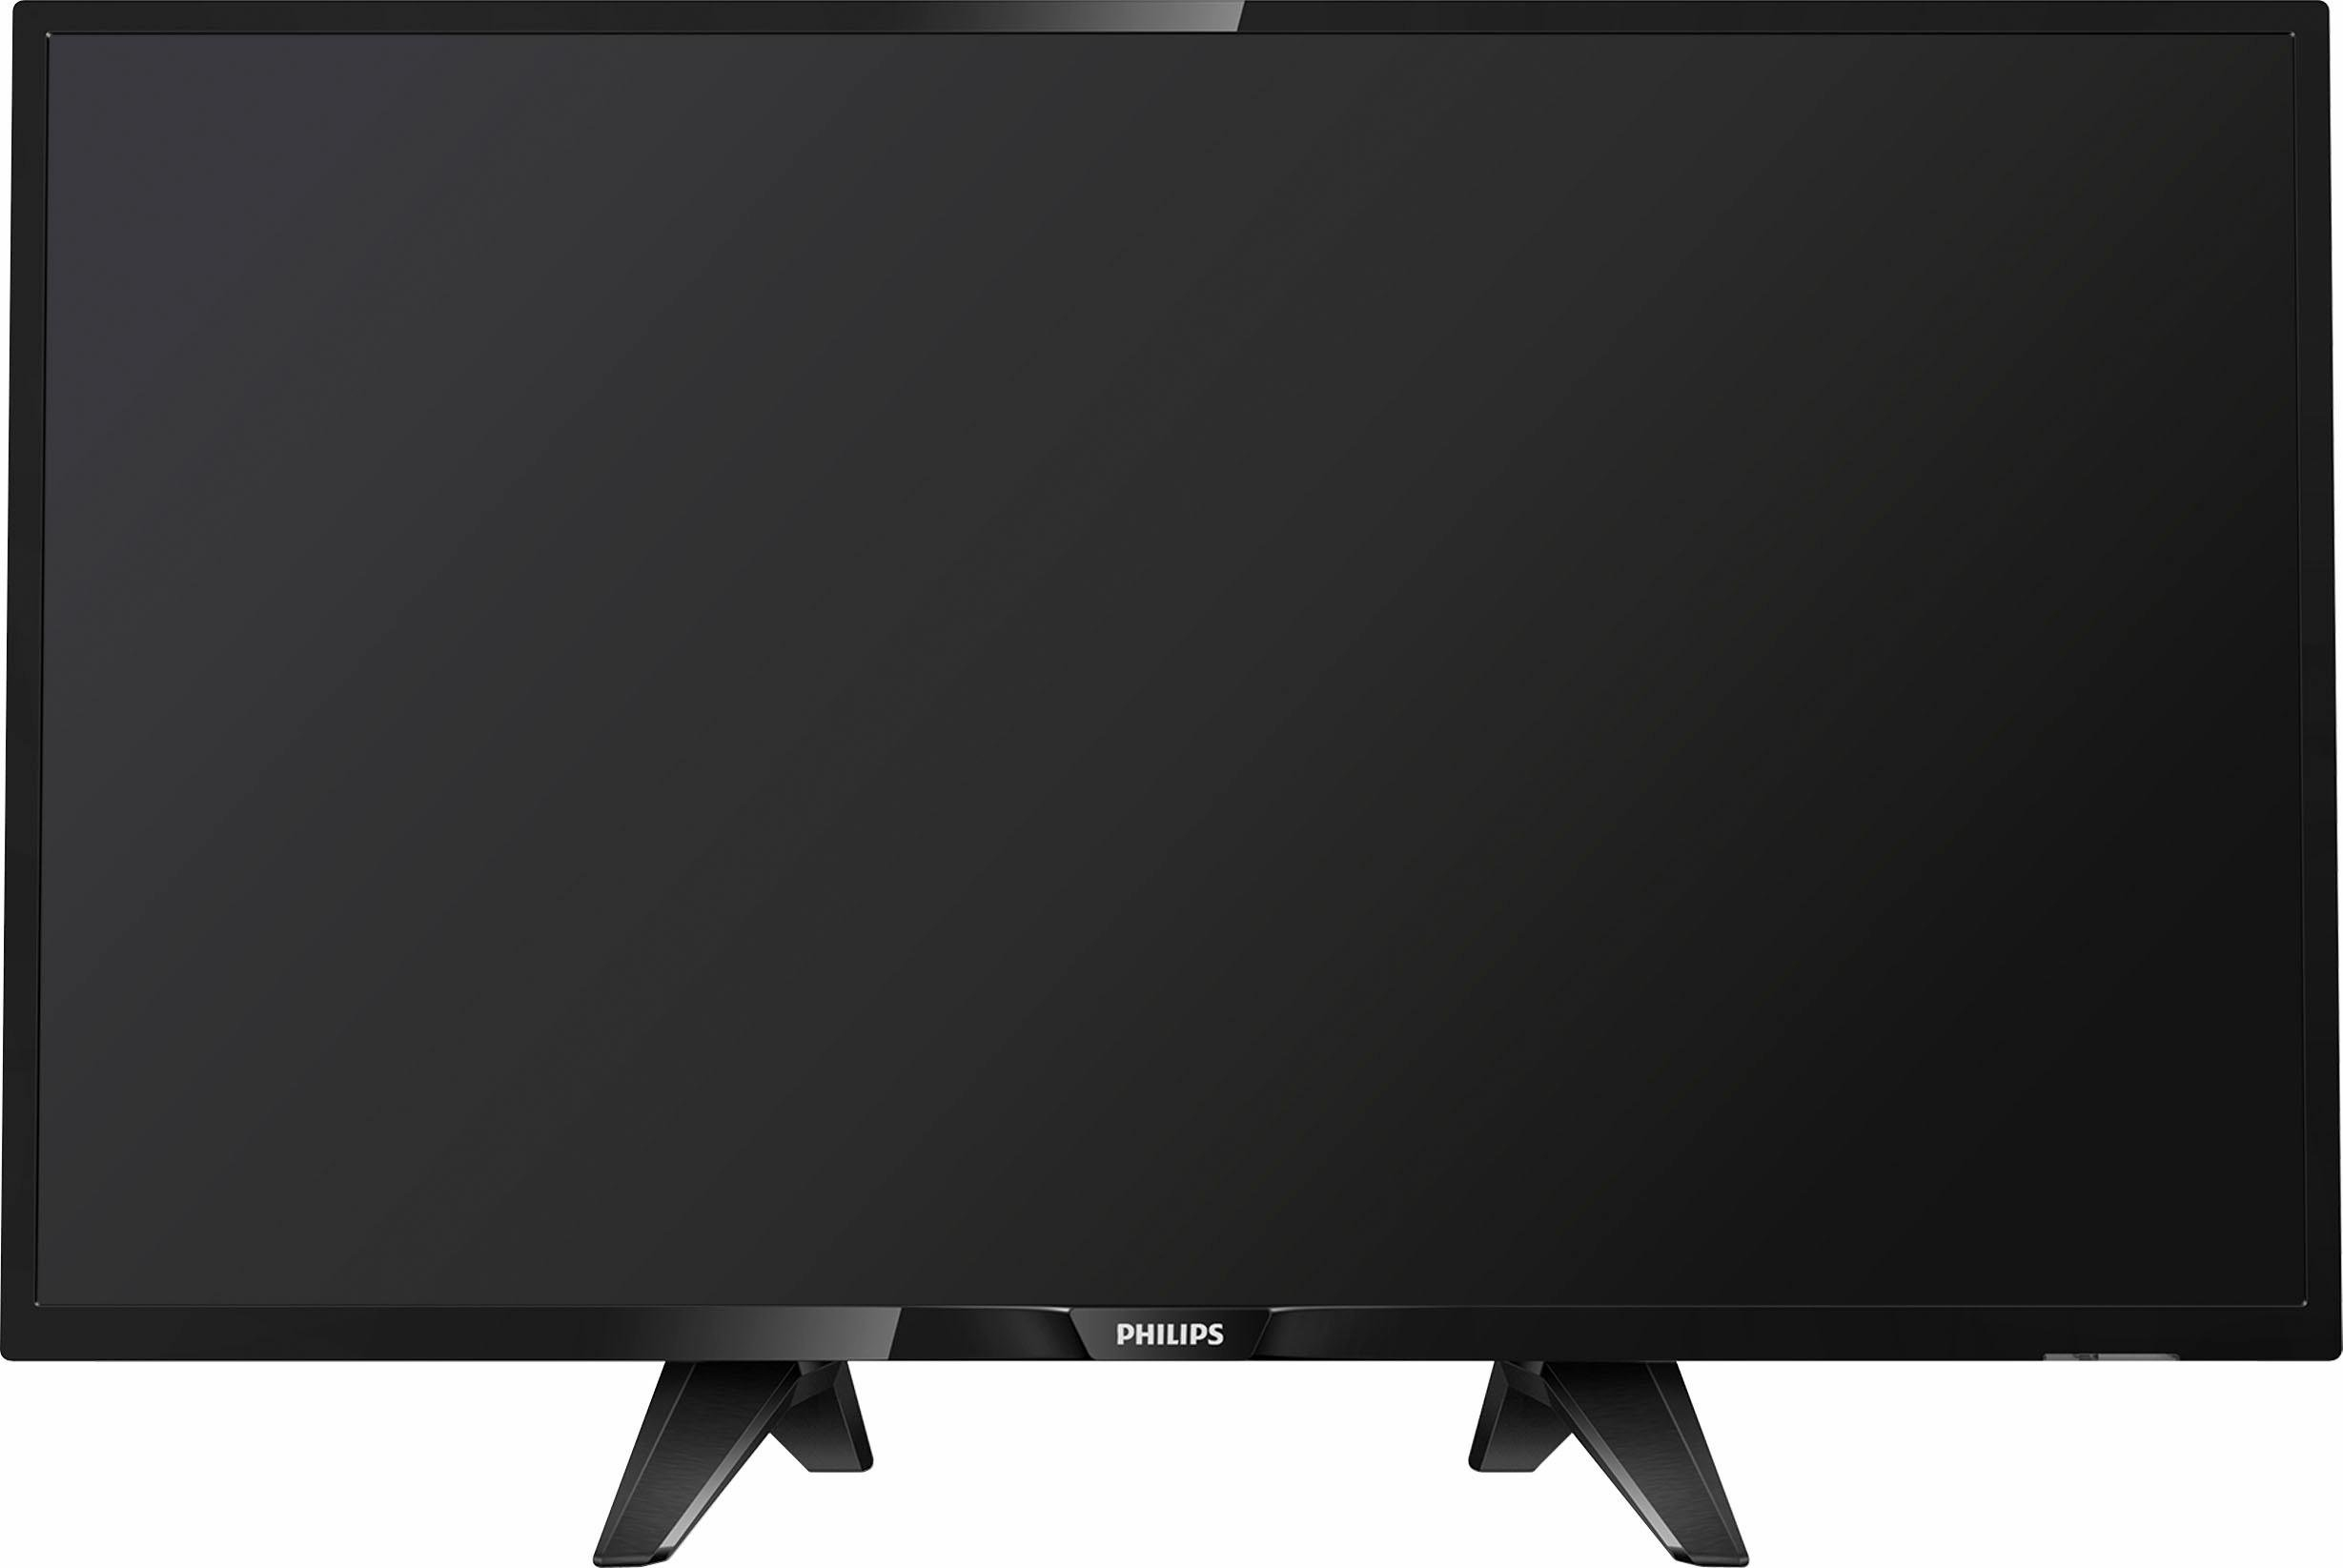 philips 32pfs4132 12 led tv 80 cm 32 inch full hd in de online winkel otto. Black Bedroom Furniture Sets. Home Design Ideas